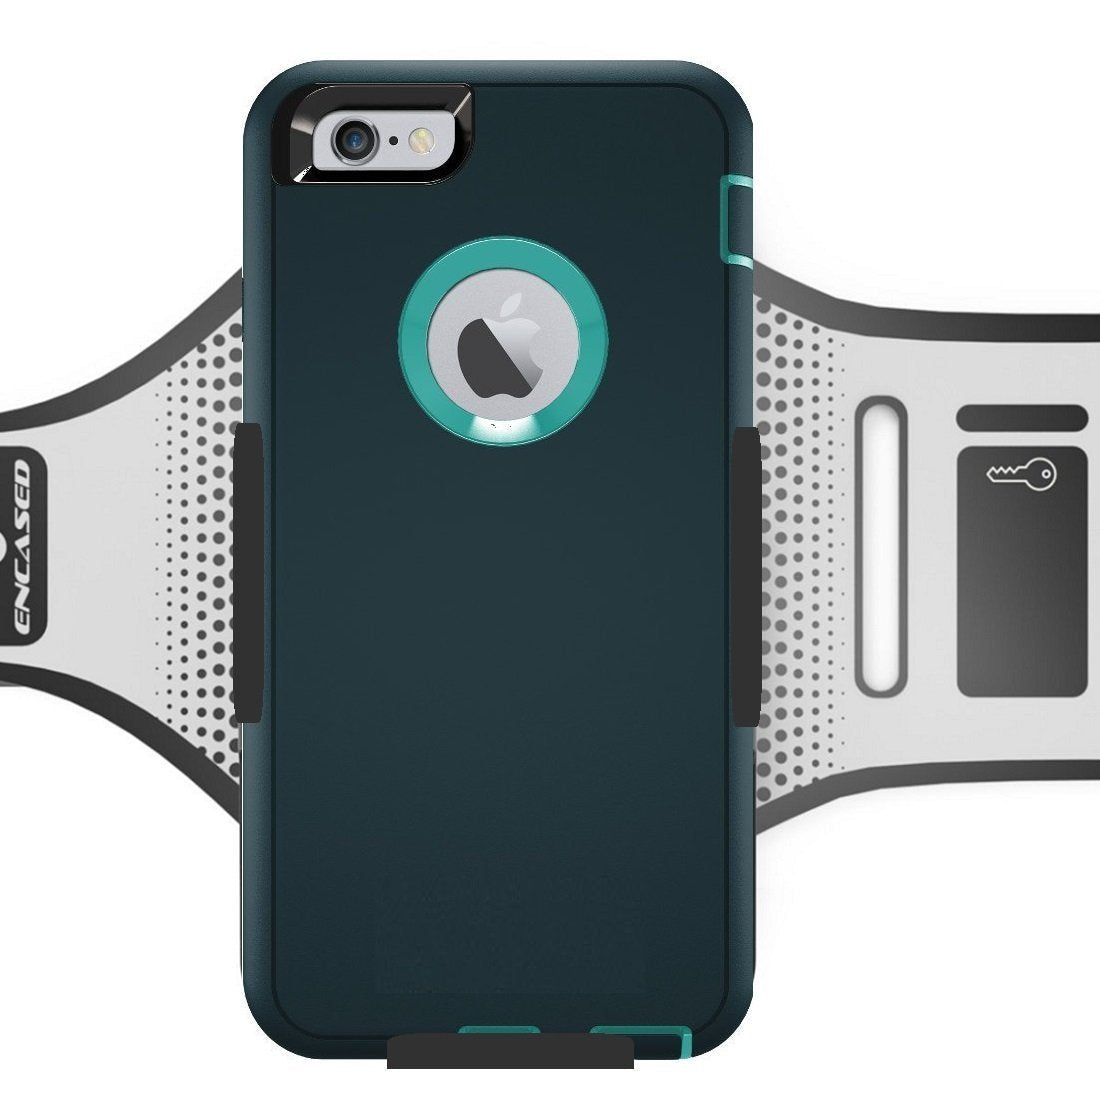 Armband For Otterbox Defender Iphone